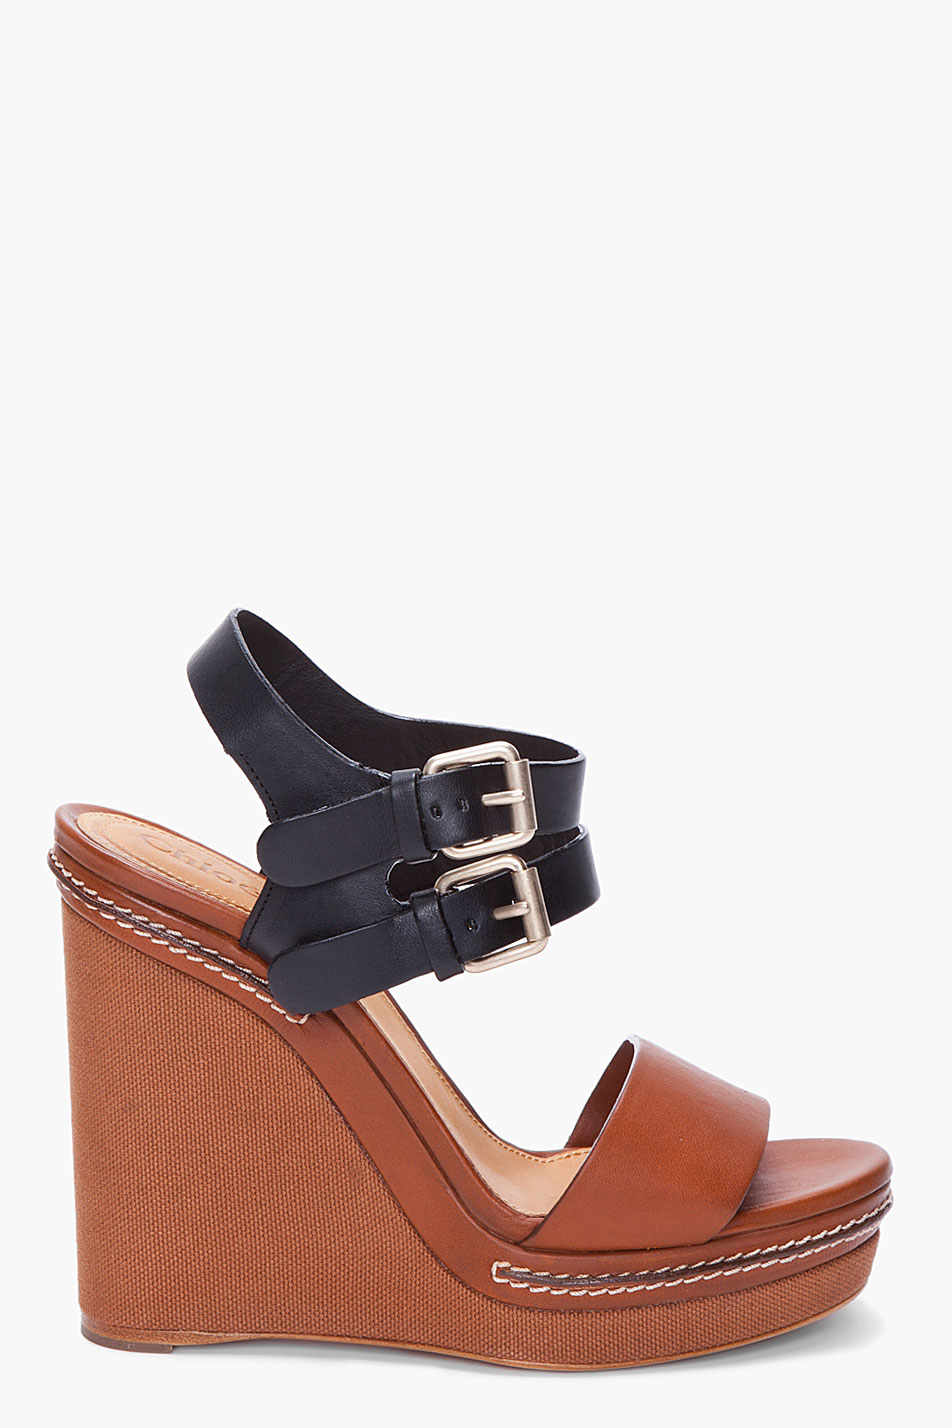 Chloé Black and Brown Wedges in Brown | Lyst